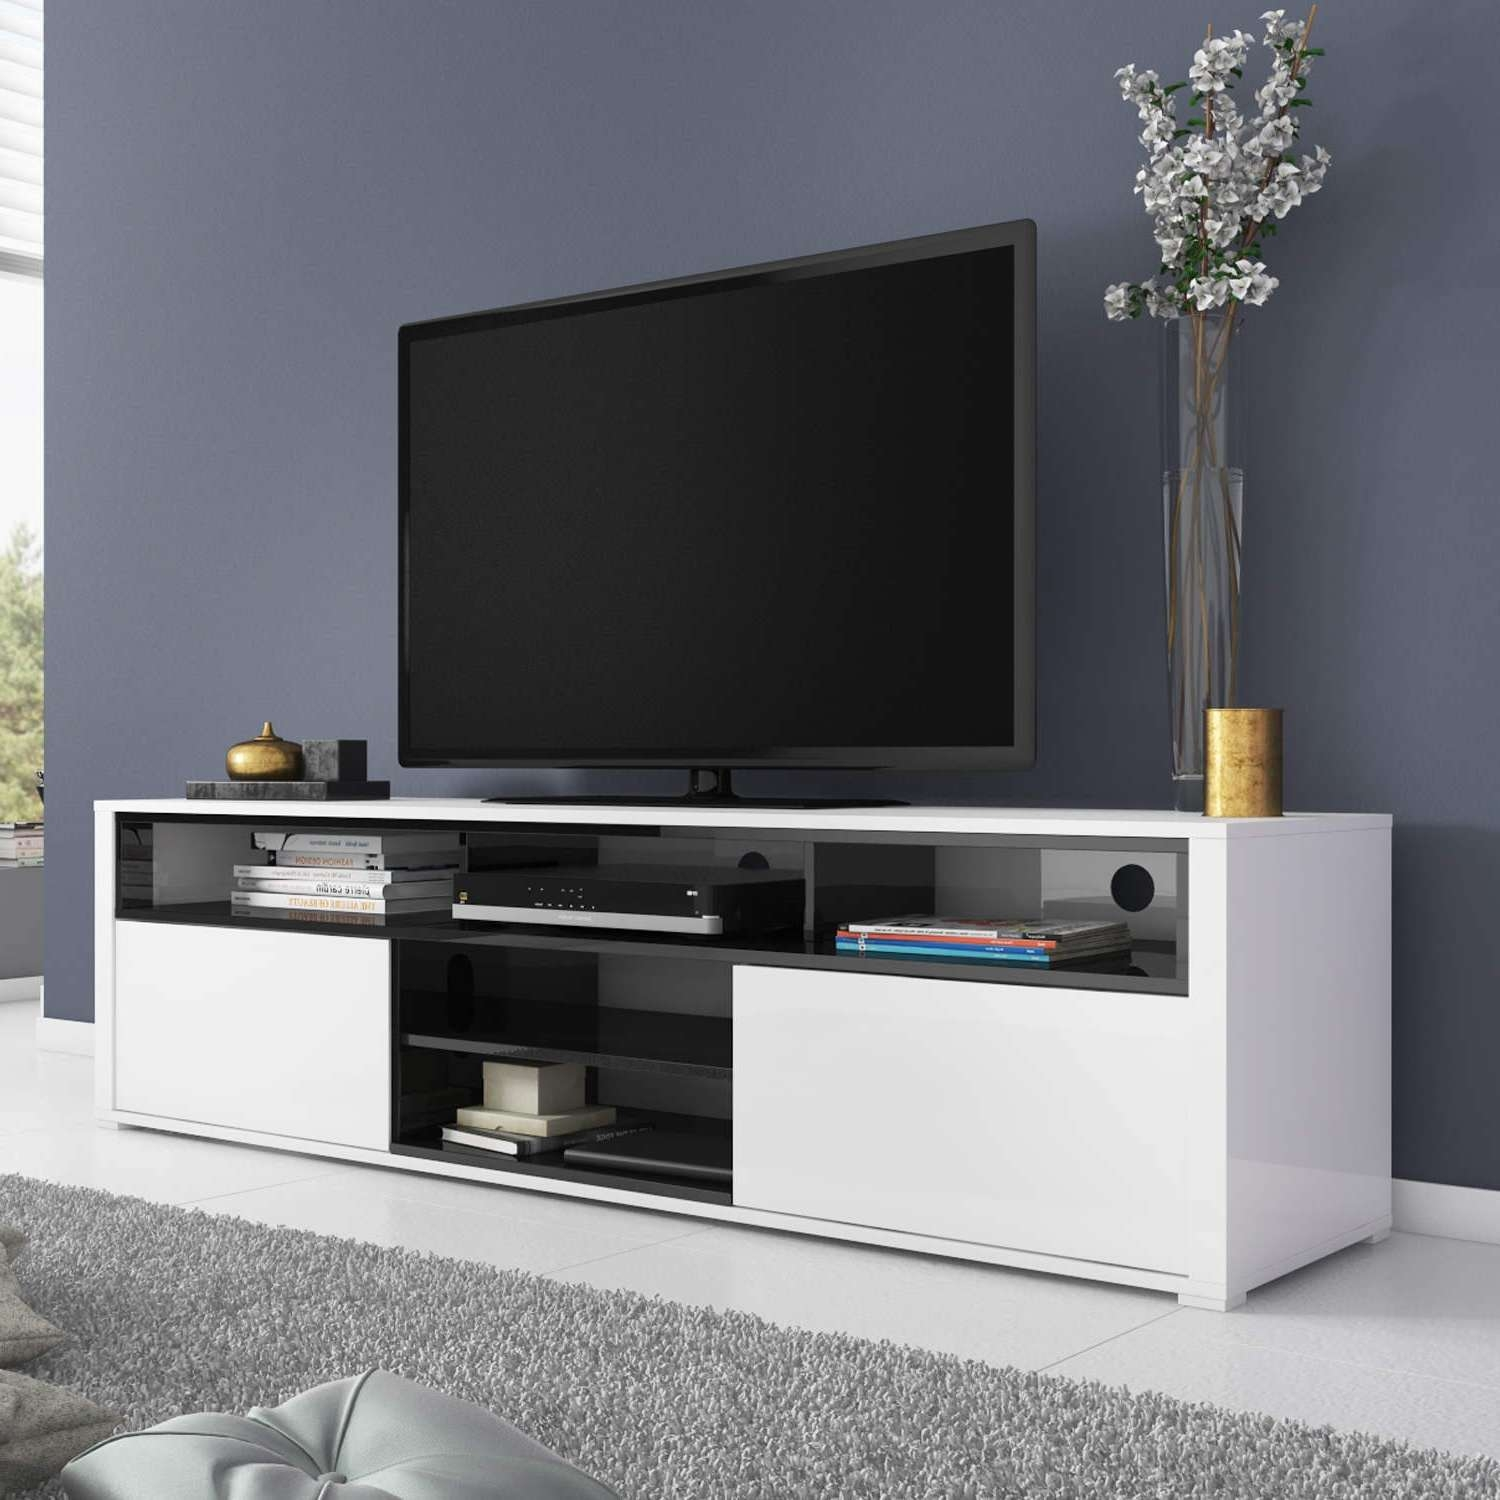 White High Gloss Tv Unit With Soundbar Shelf/ Tv Cabinet/ Tv Stand Intended For High Gloss Tv Cabinets (View 14 of 20)